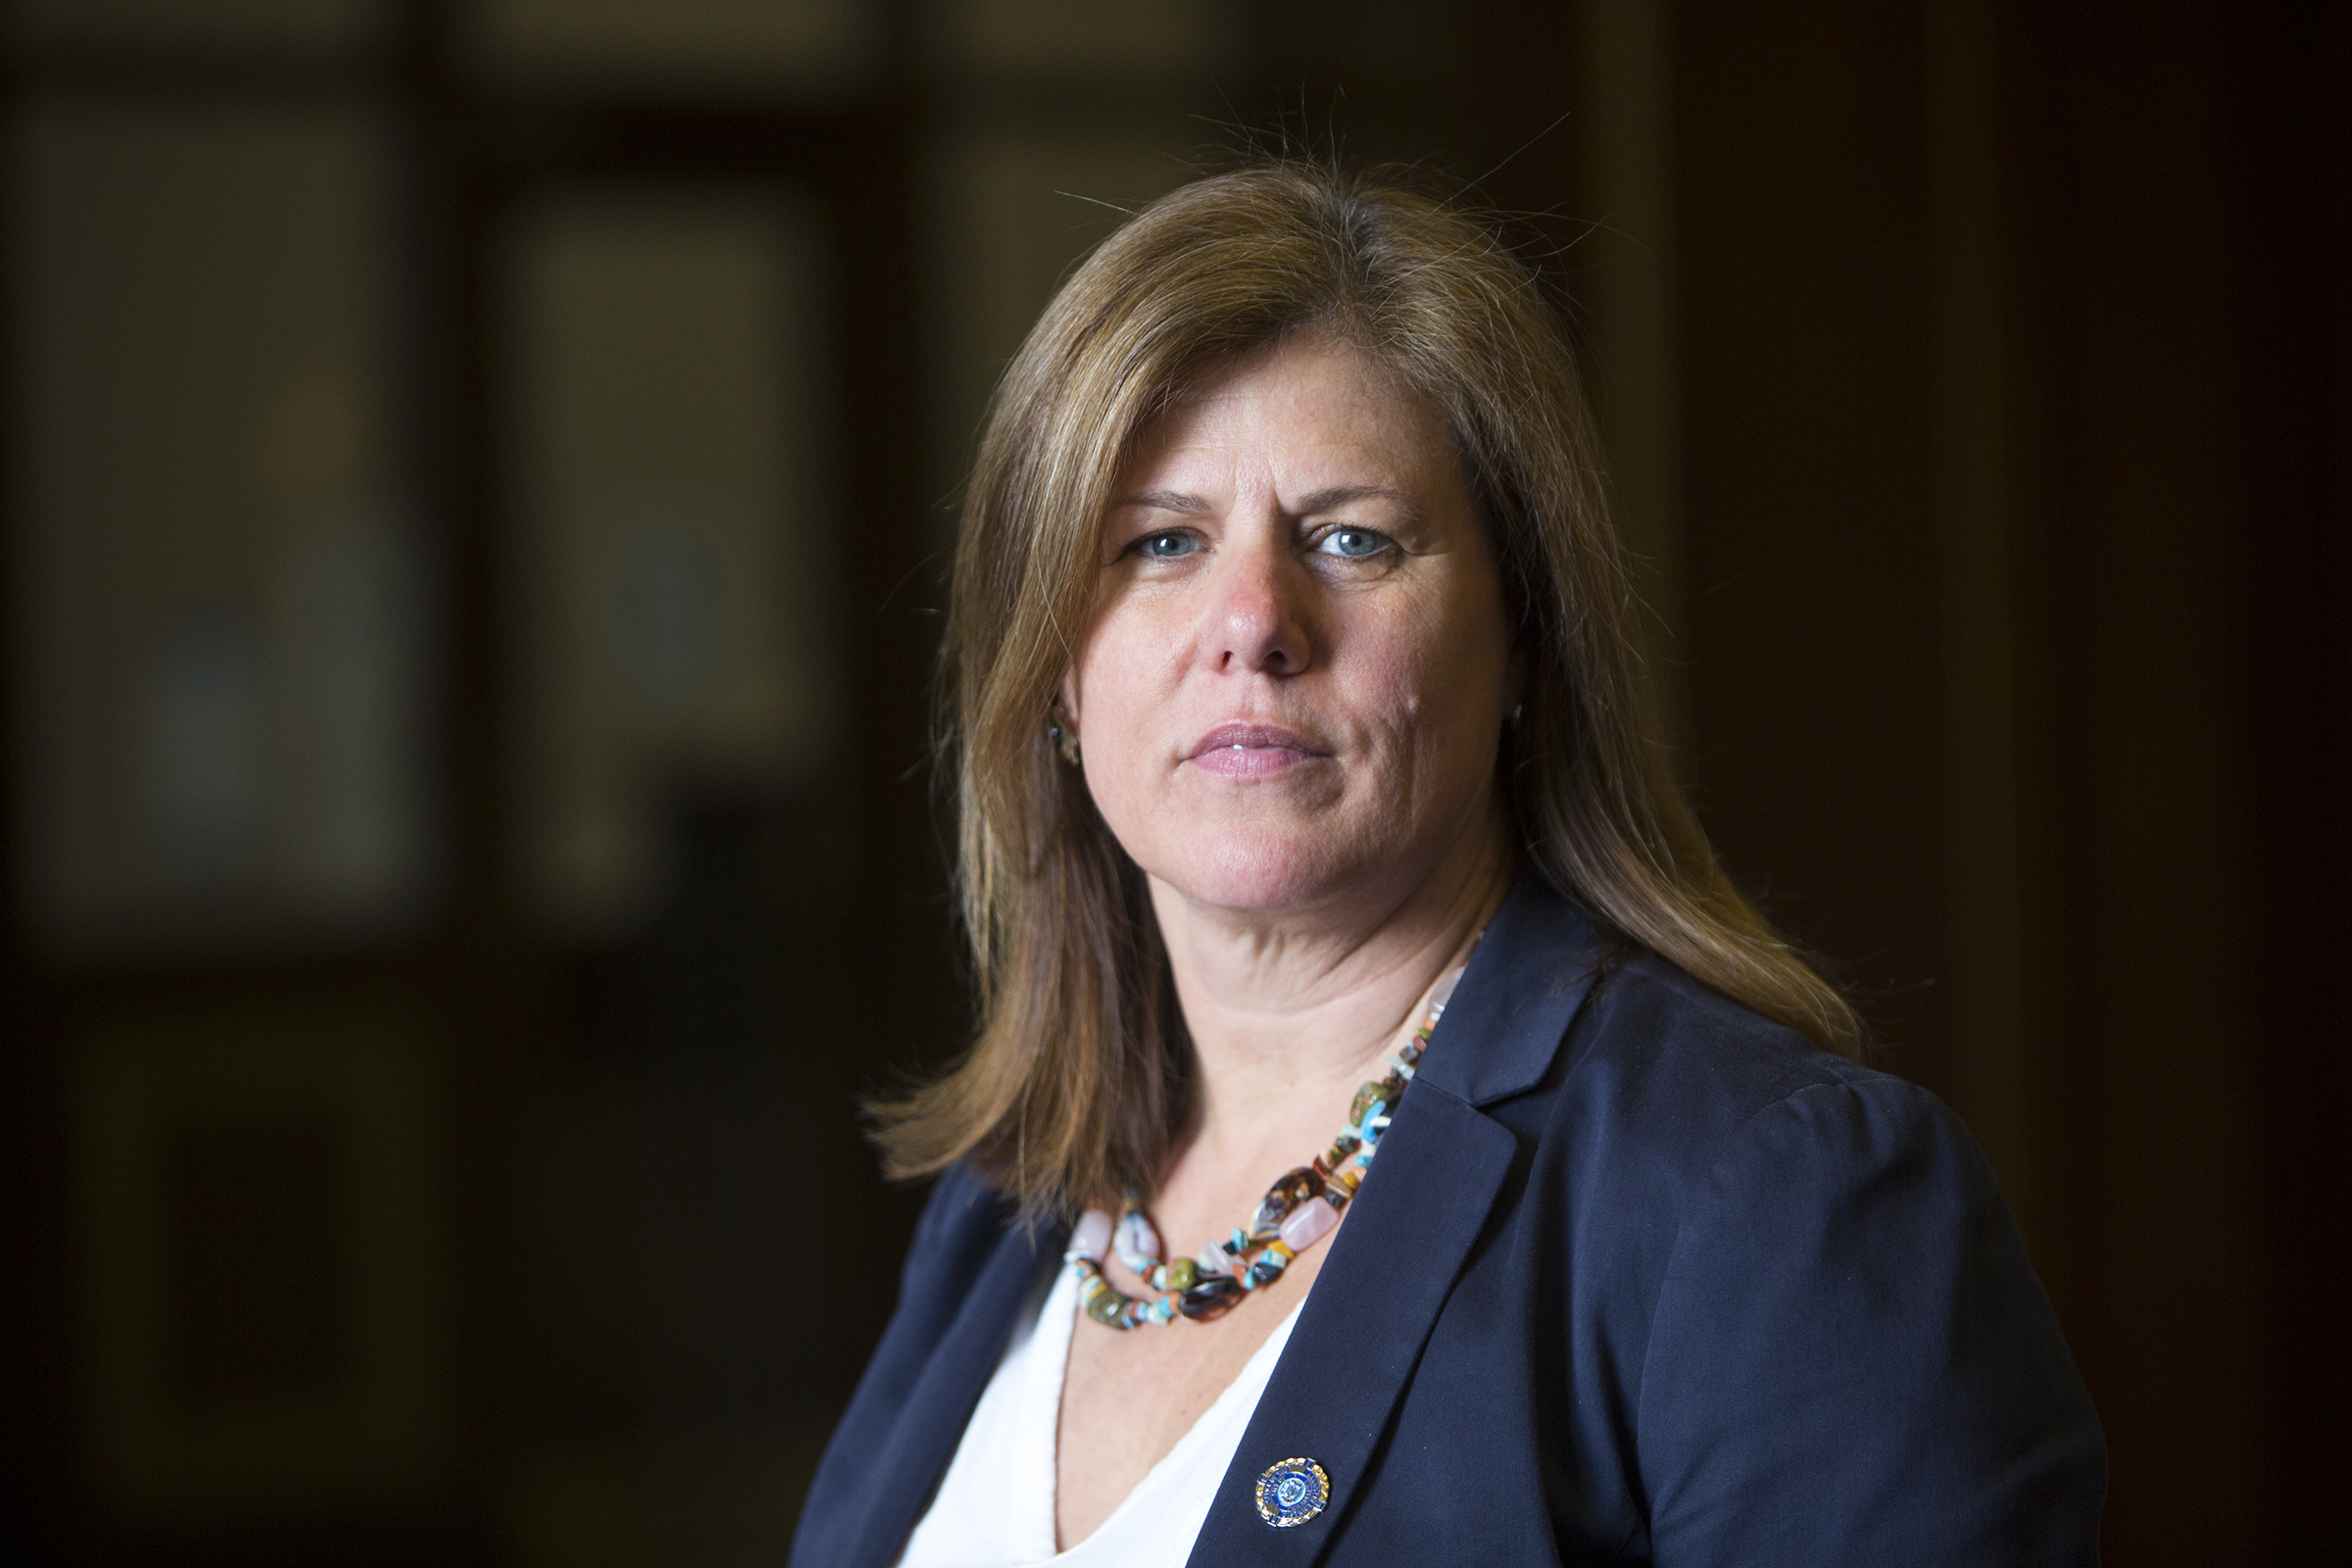 Patricia Cummings, chief of the Conviction Integrity Unit at the Philadelphia District Attorney's Office in 2018.